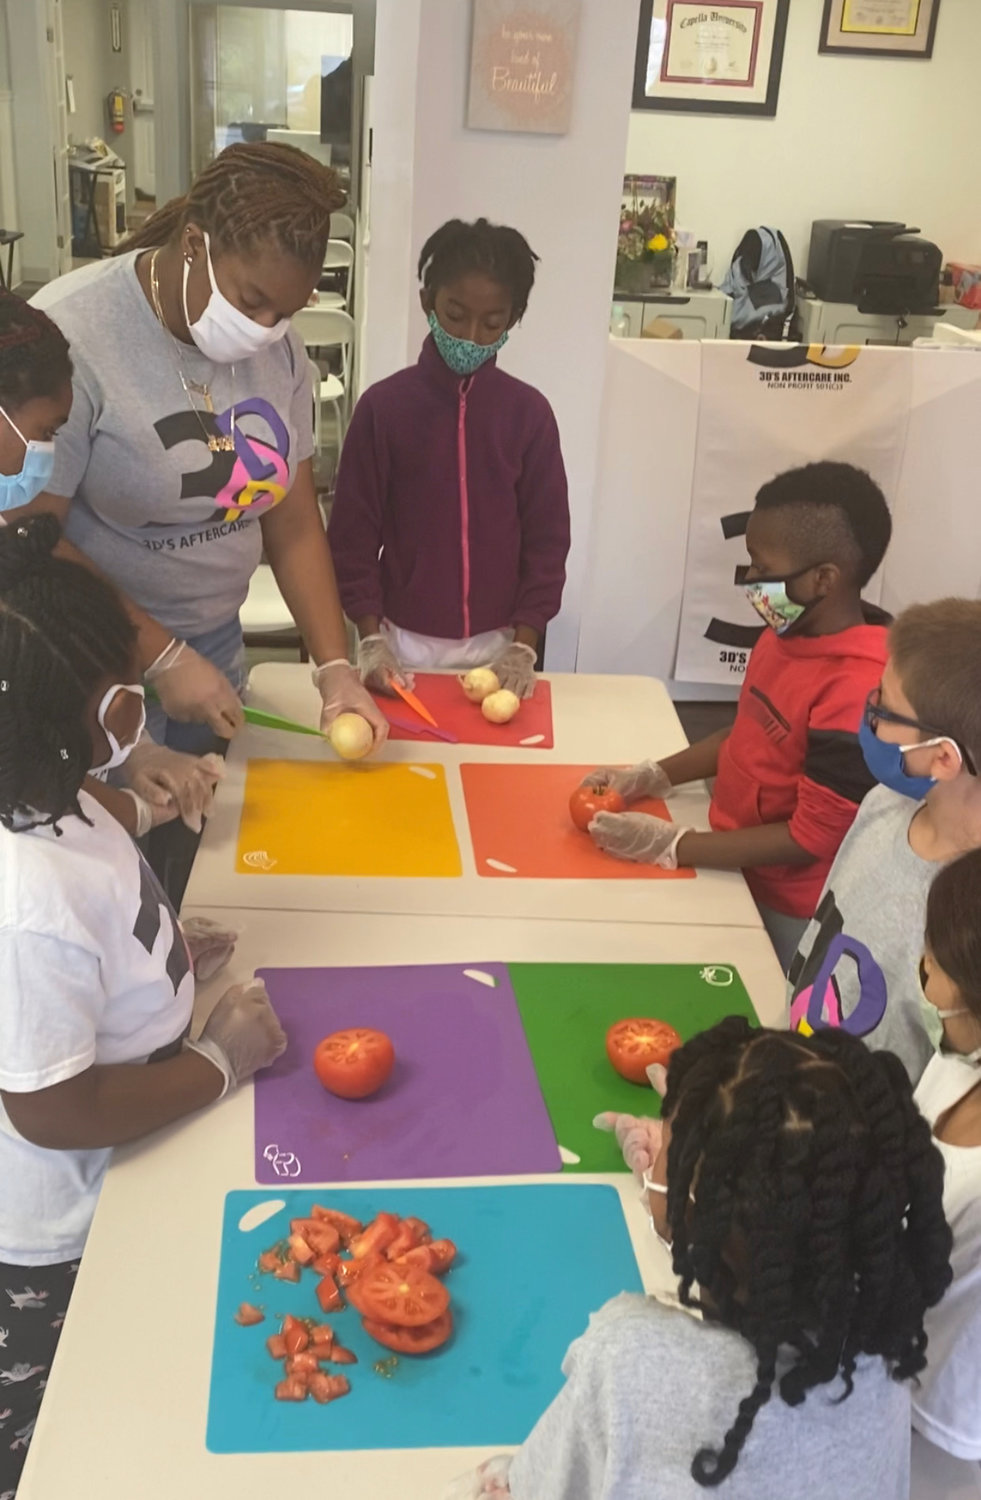 The 3D's center offers cooking classes for children to learn basic skills.